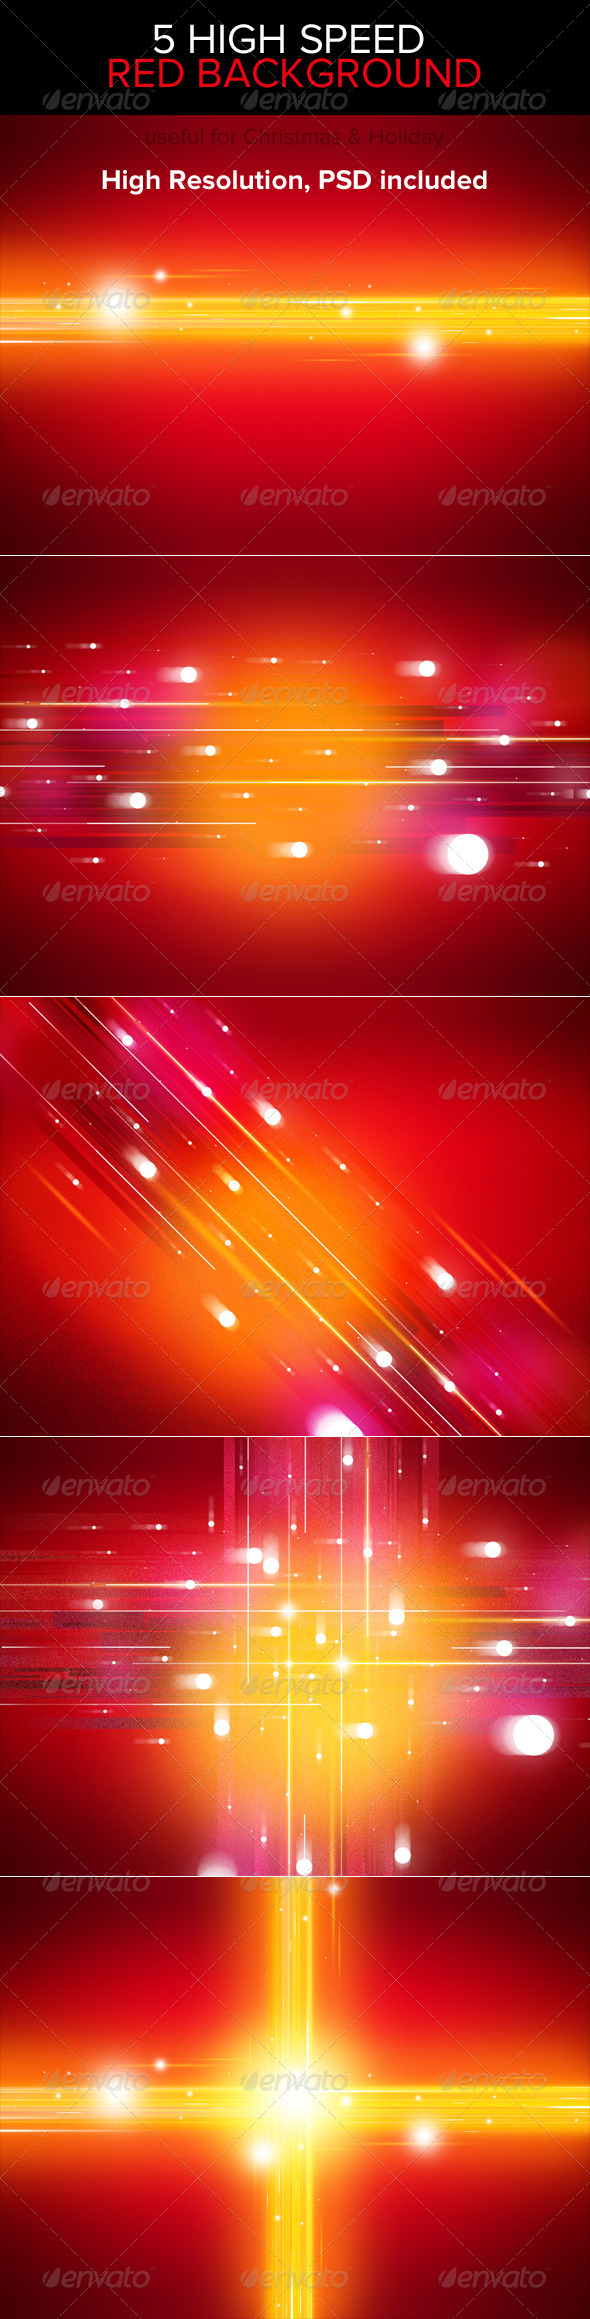 GraphicRiver High Speed Red Backgrounds 3586822